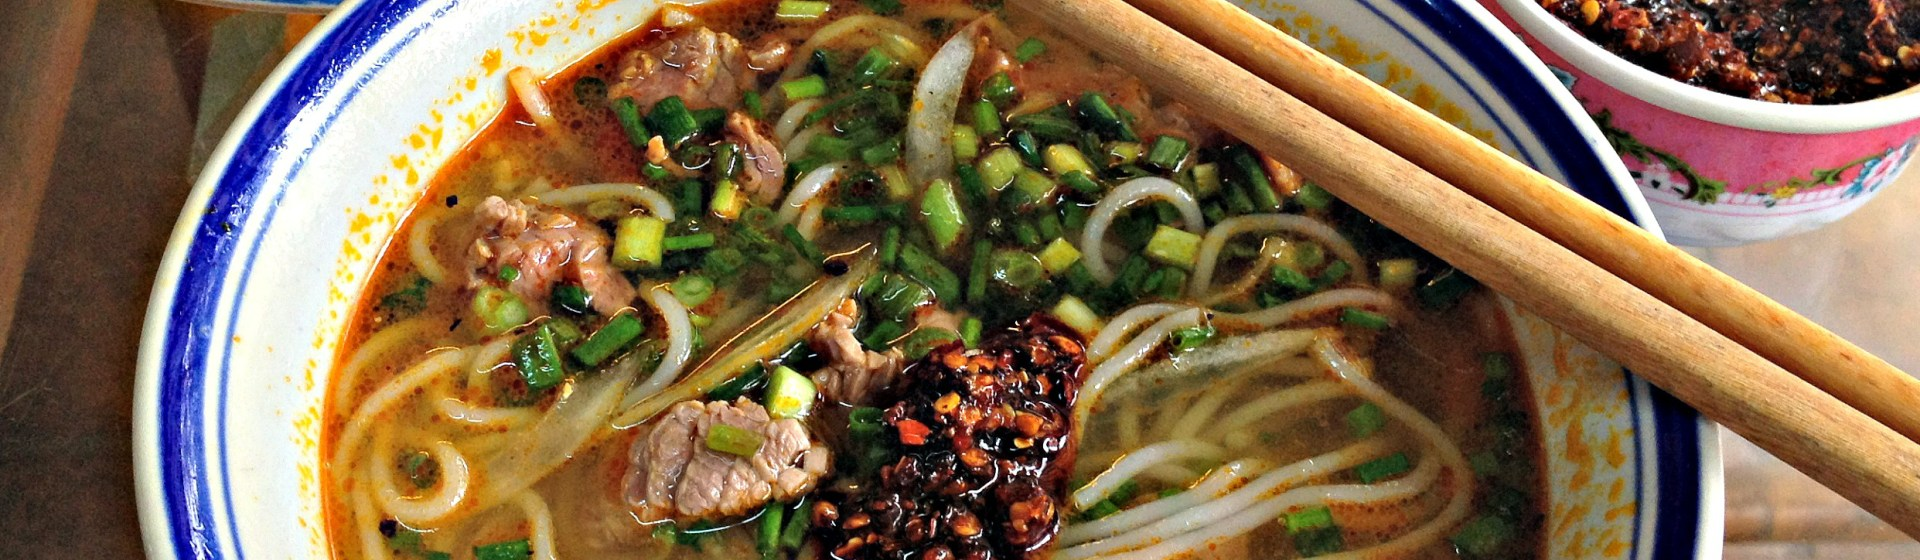 Typical Bún bò Huế up close